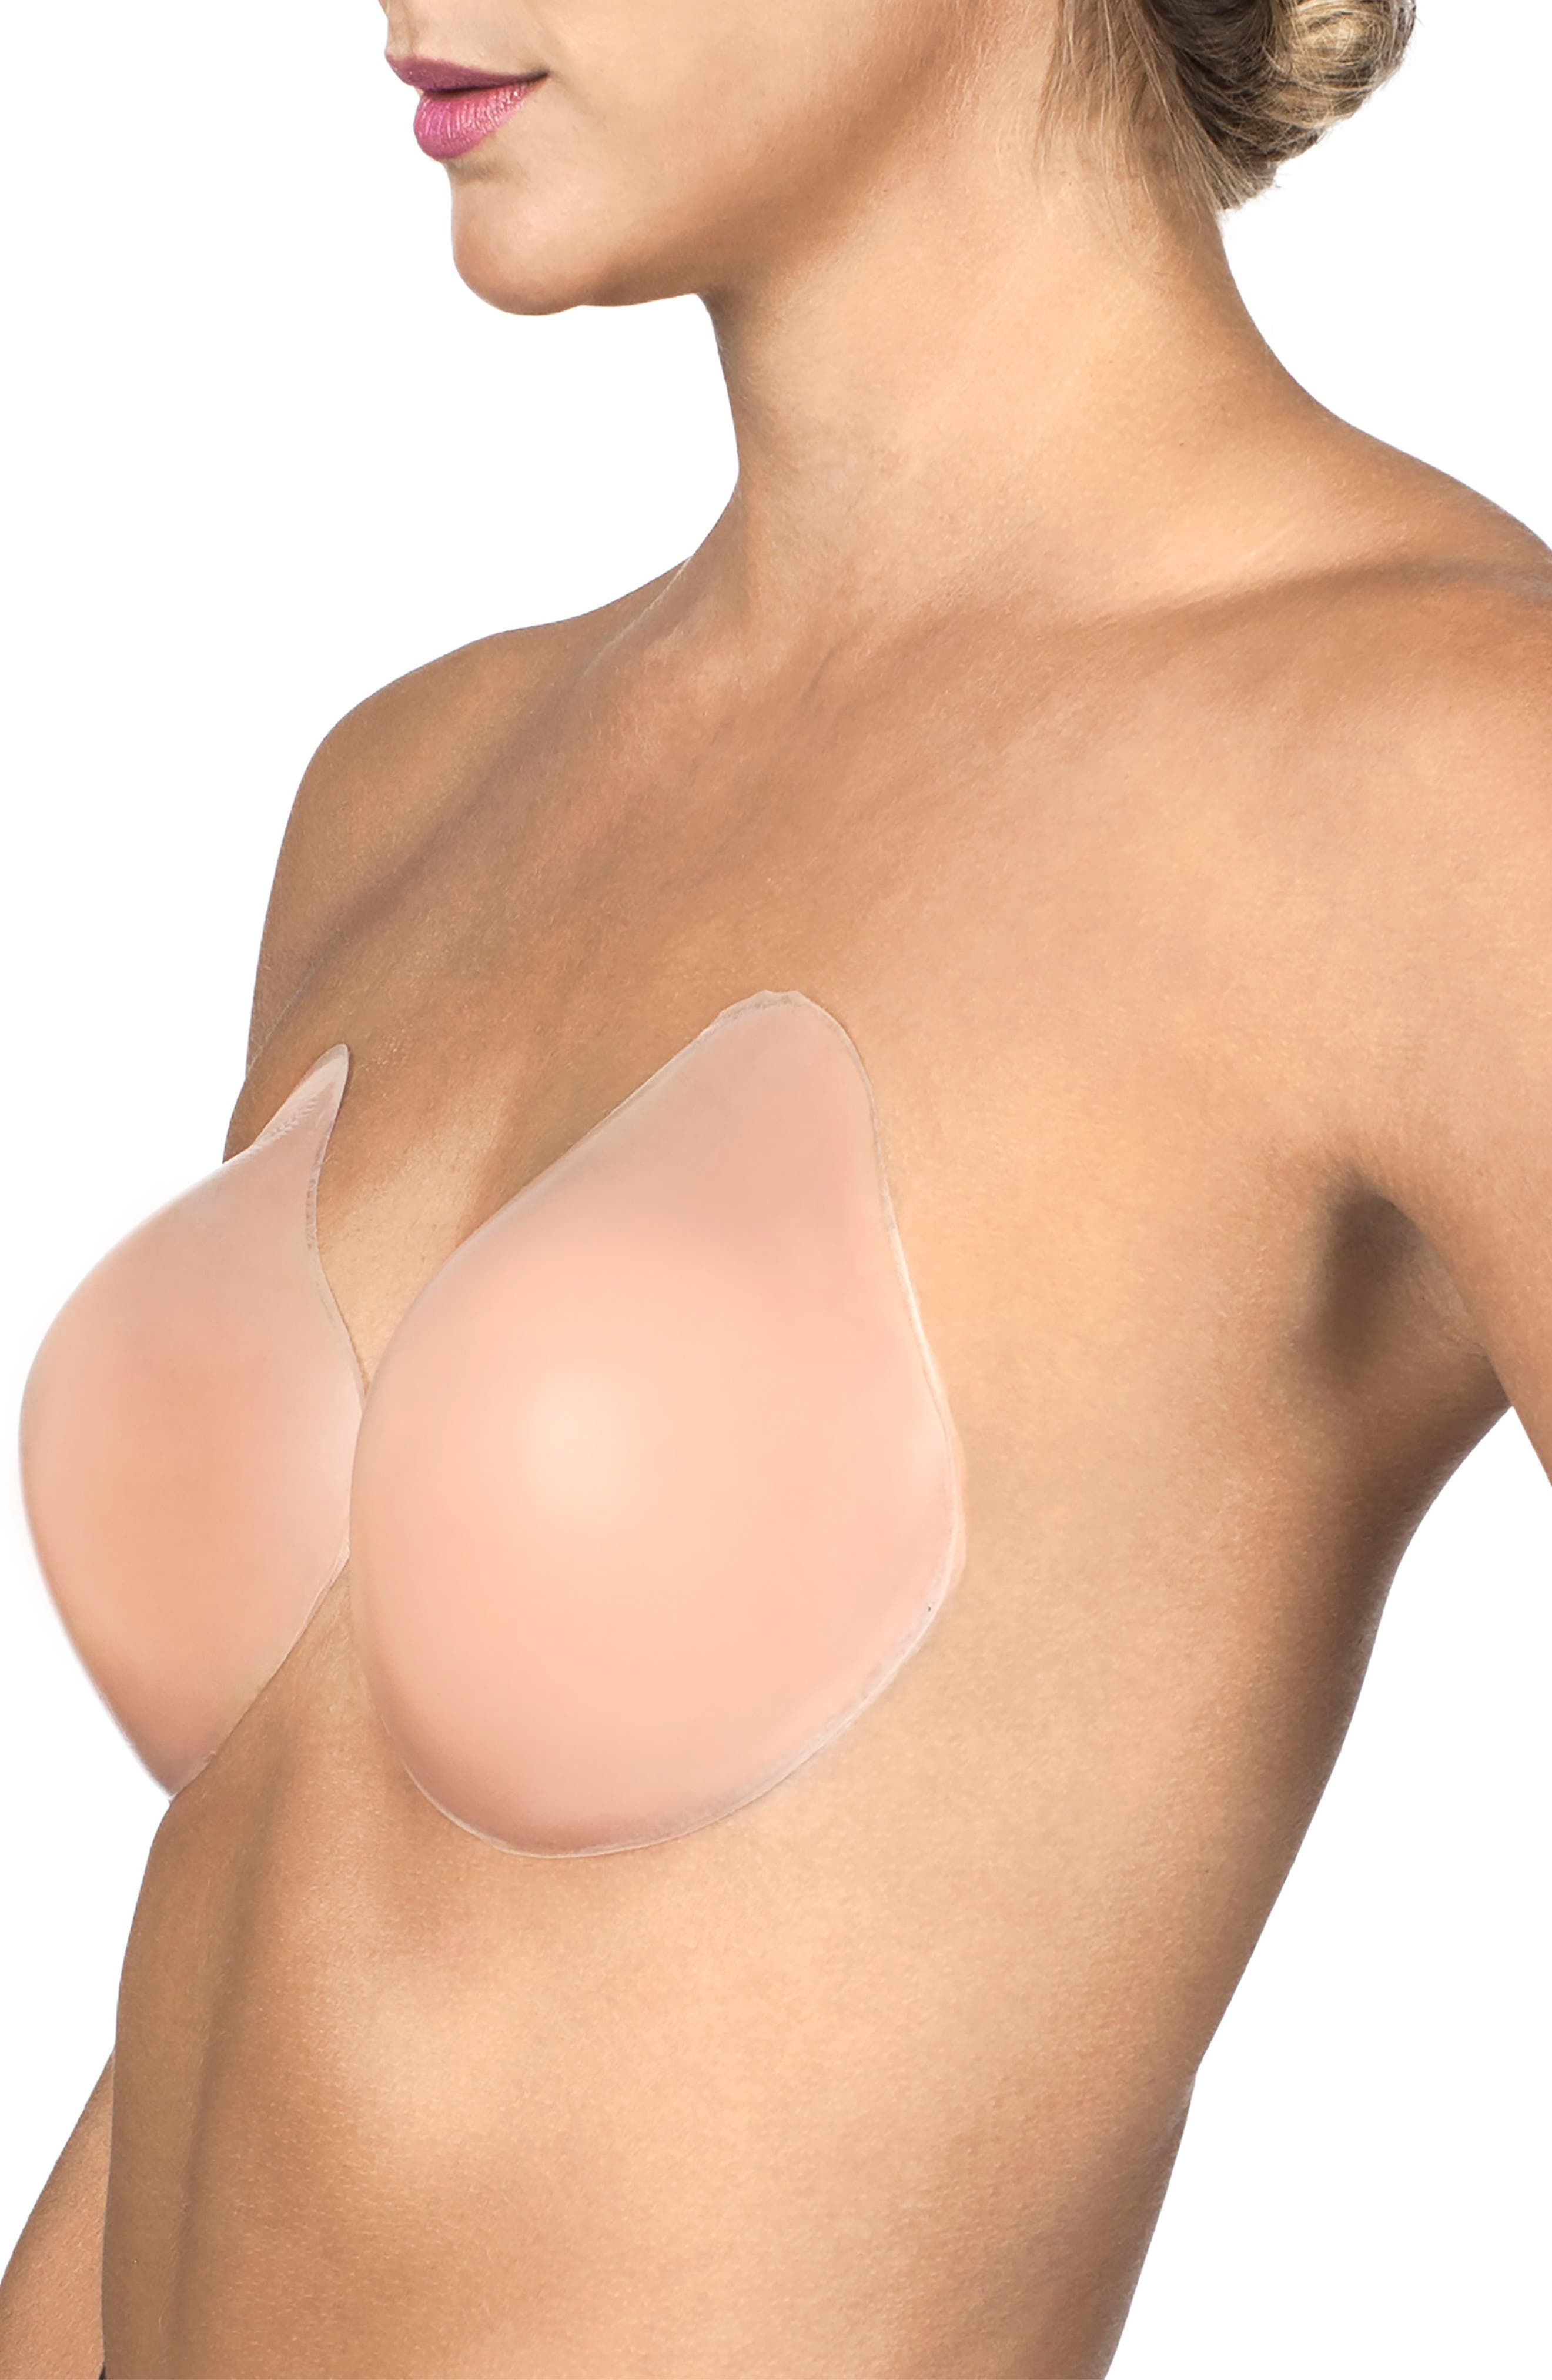 NORDSTROM LINGERIE,                             Lift It Up Adhesive Silicone Bra,                             Alternate thumbnail 3, color,                             NUDE